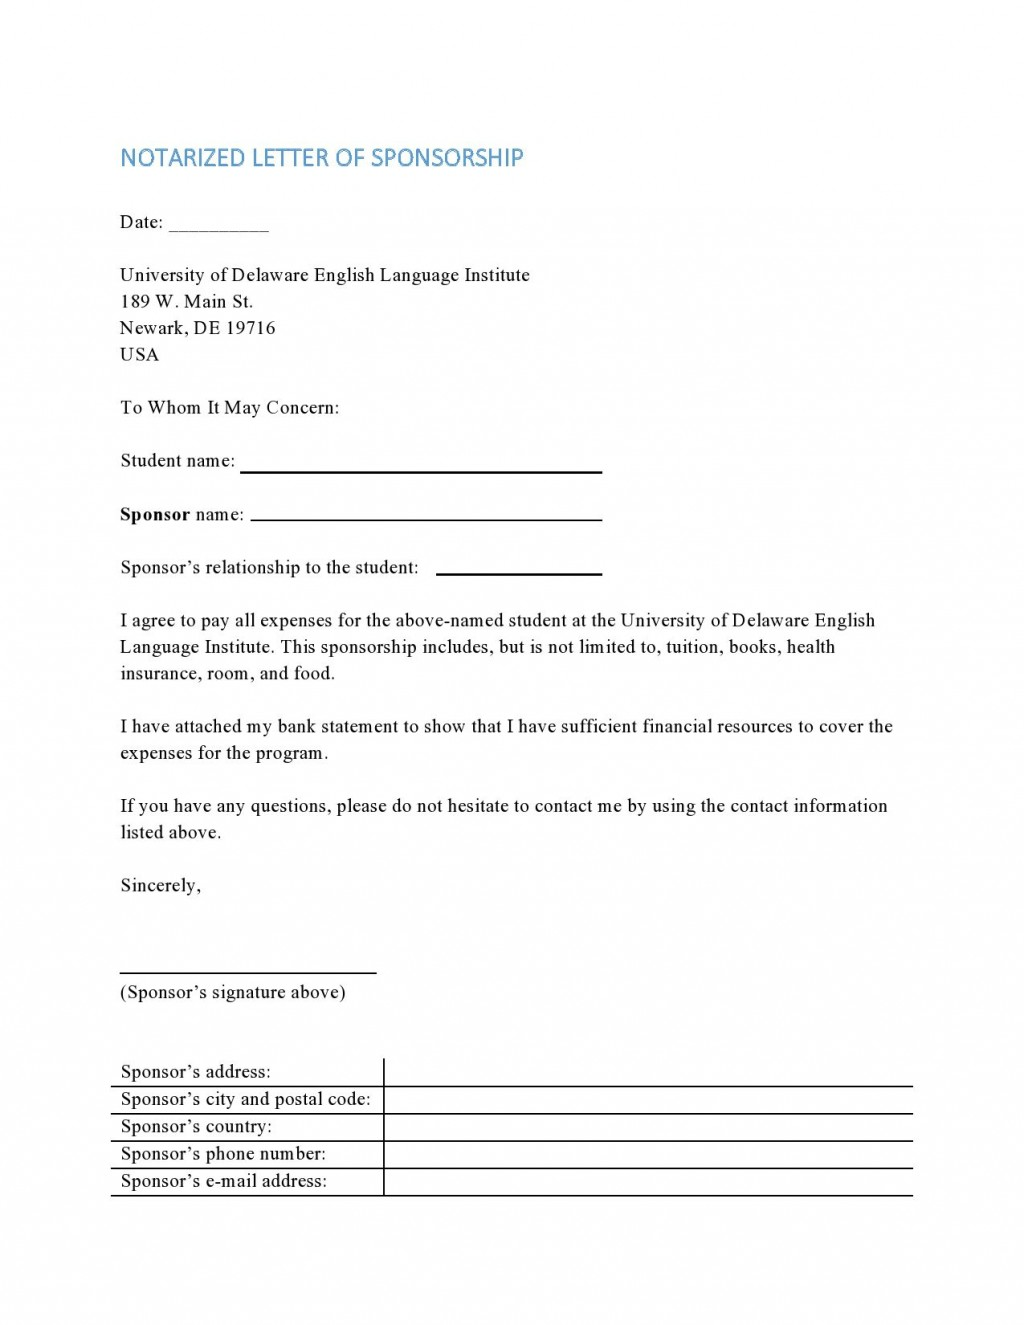 003 Surprising Notarized Letter Template Word High Def  MicrosoftLarge